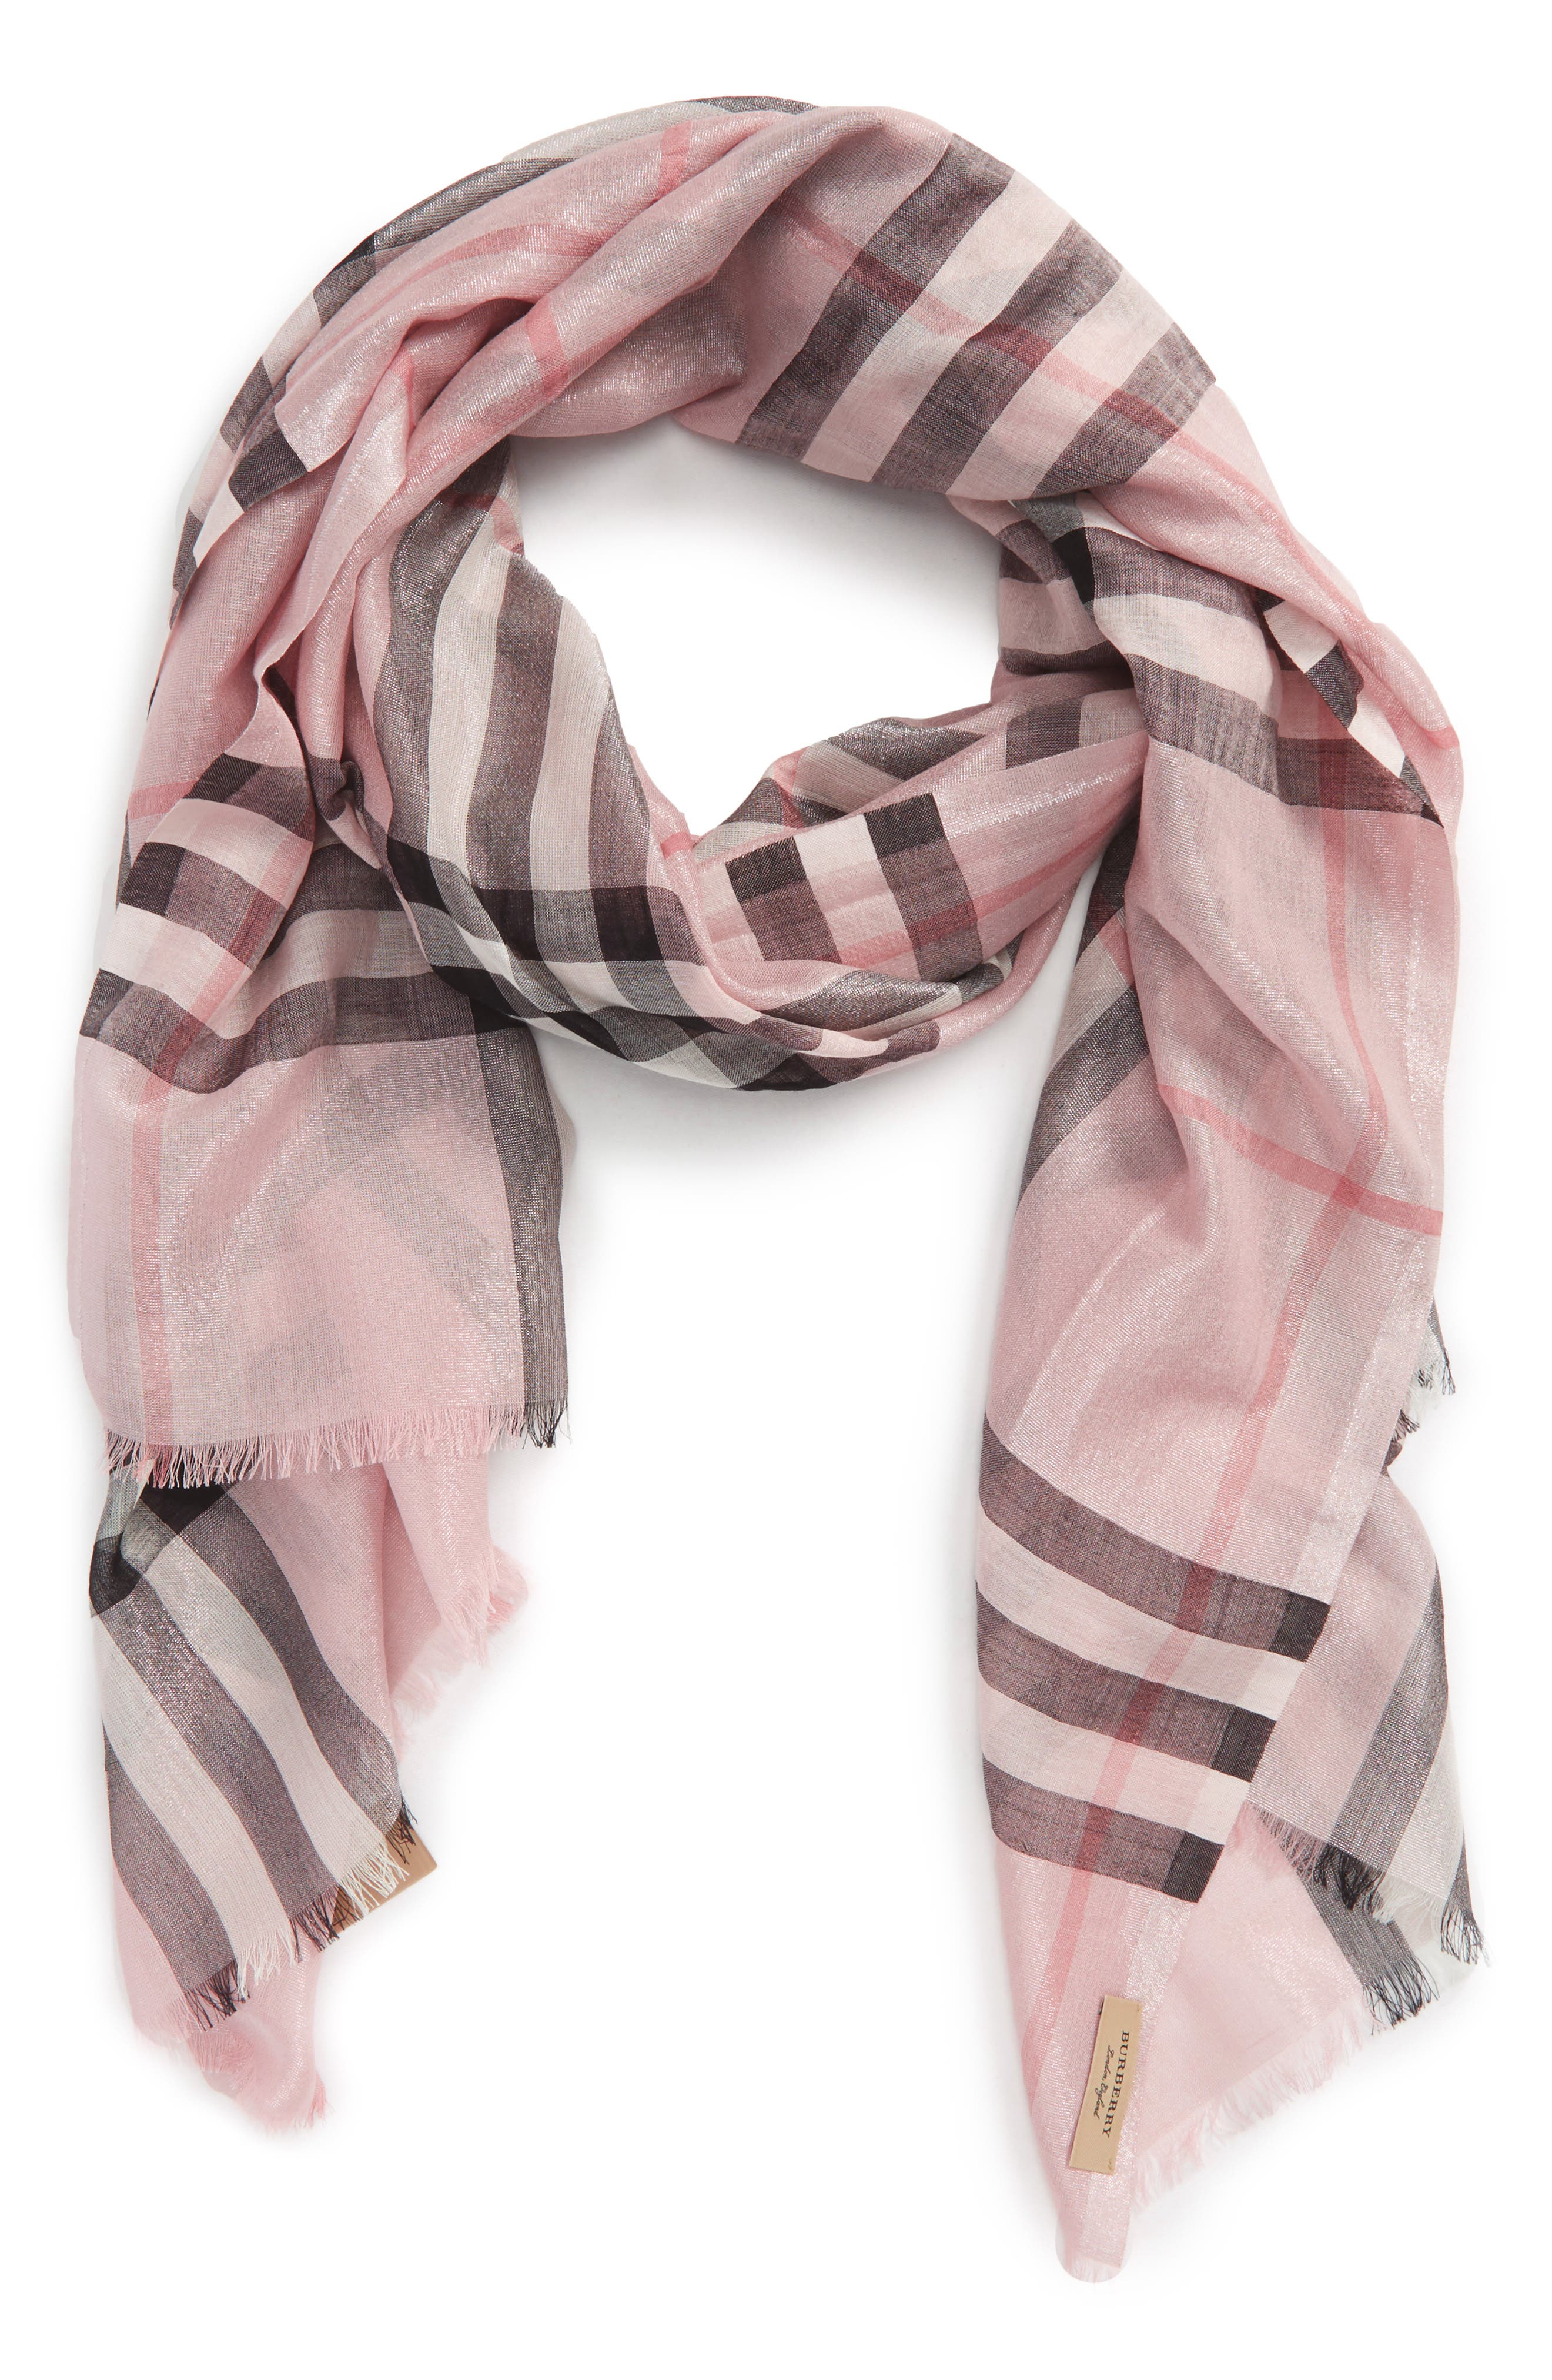 Metallic Giant Check Scarf,                             Main thumbnail 1, color,                             ASH ROSE/ SILVER